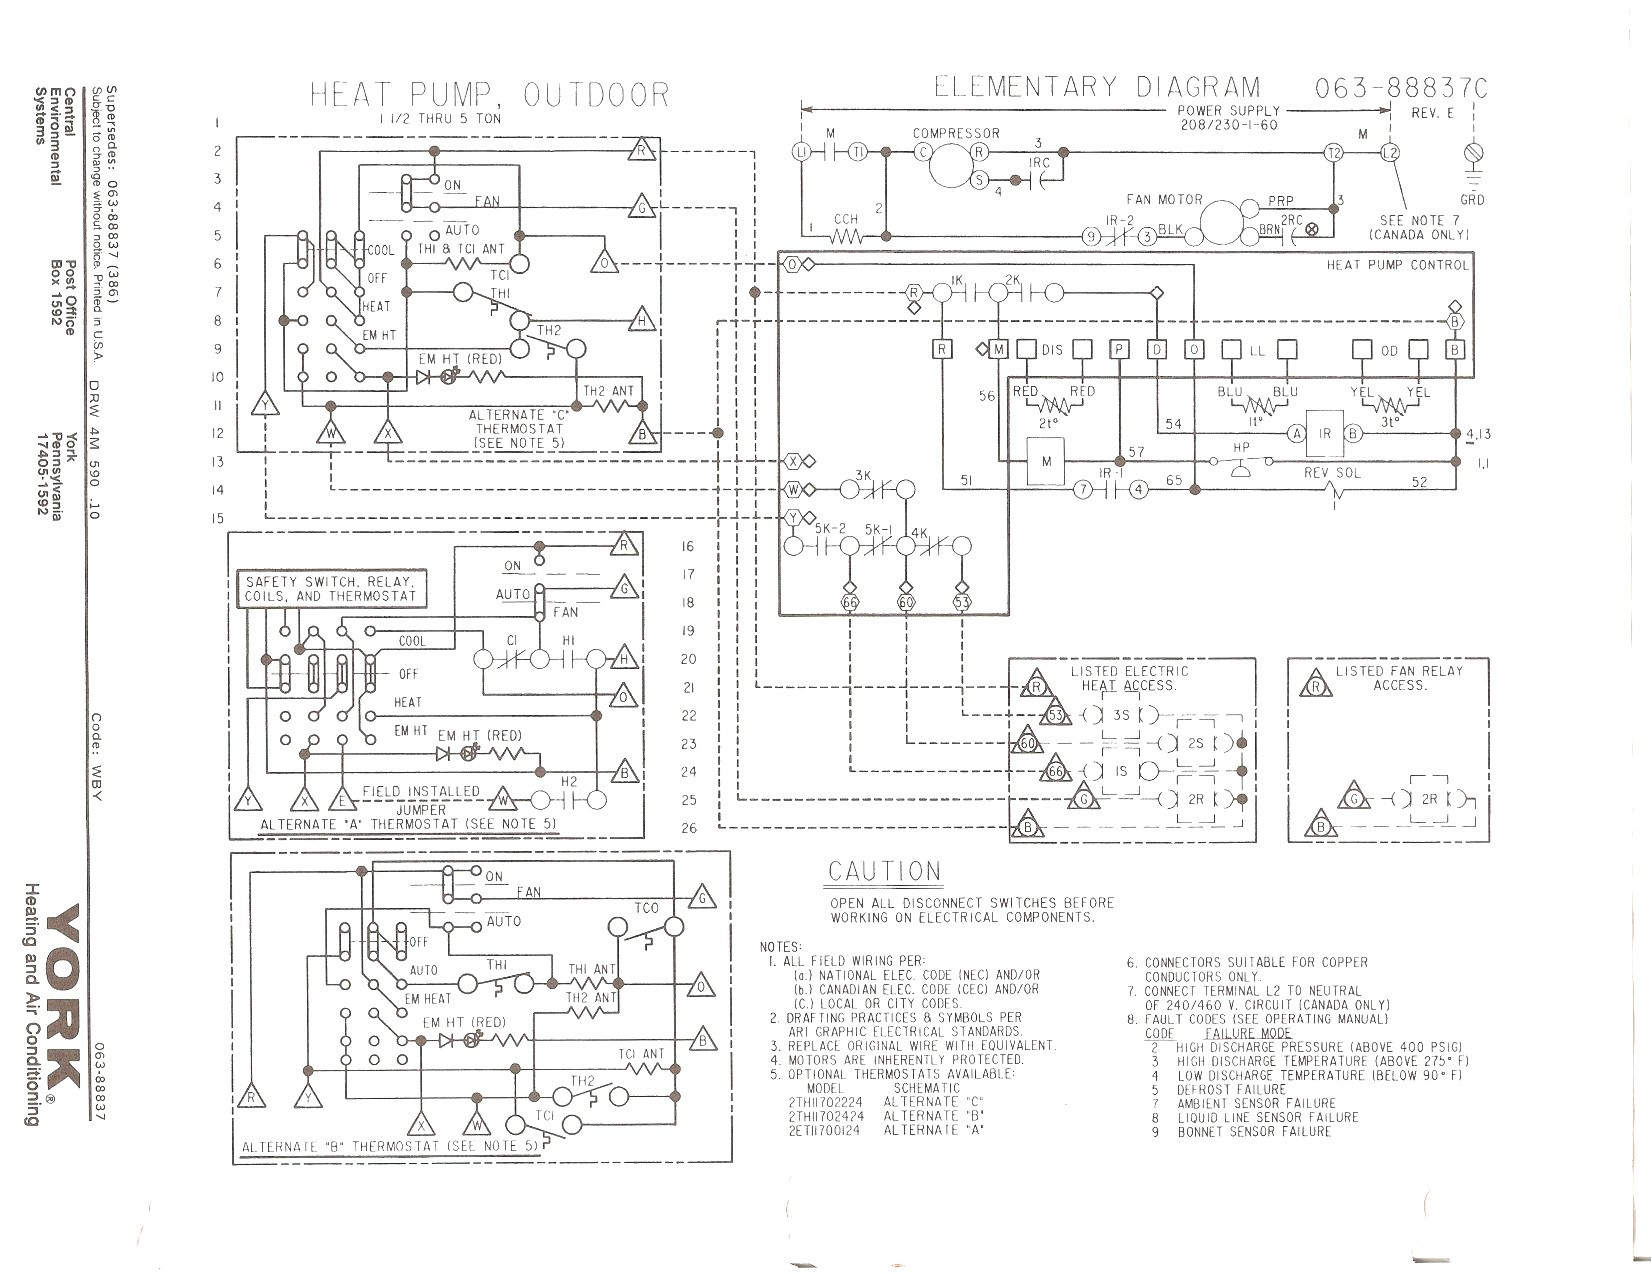 trane xr13 wiring diagram Download-Trane Xr13 Wiring Diagram Free Downloads Contemporary Trane Wiring Diagram Ponent Electrical Circuit 20-k